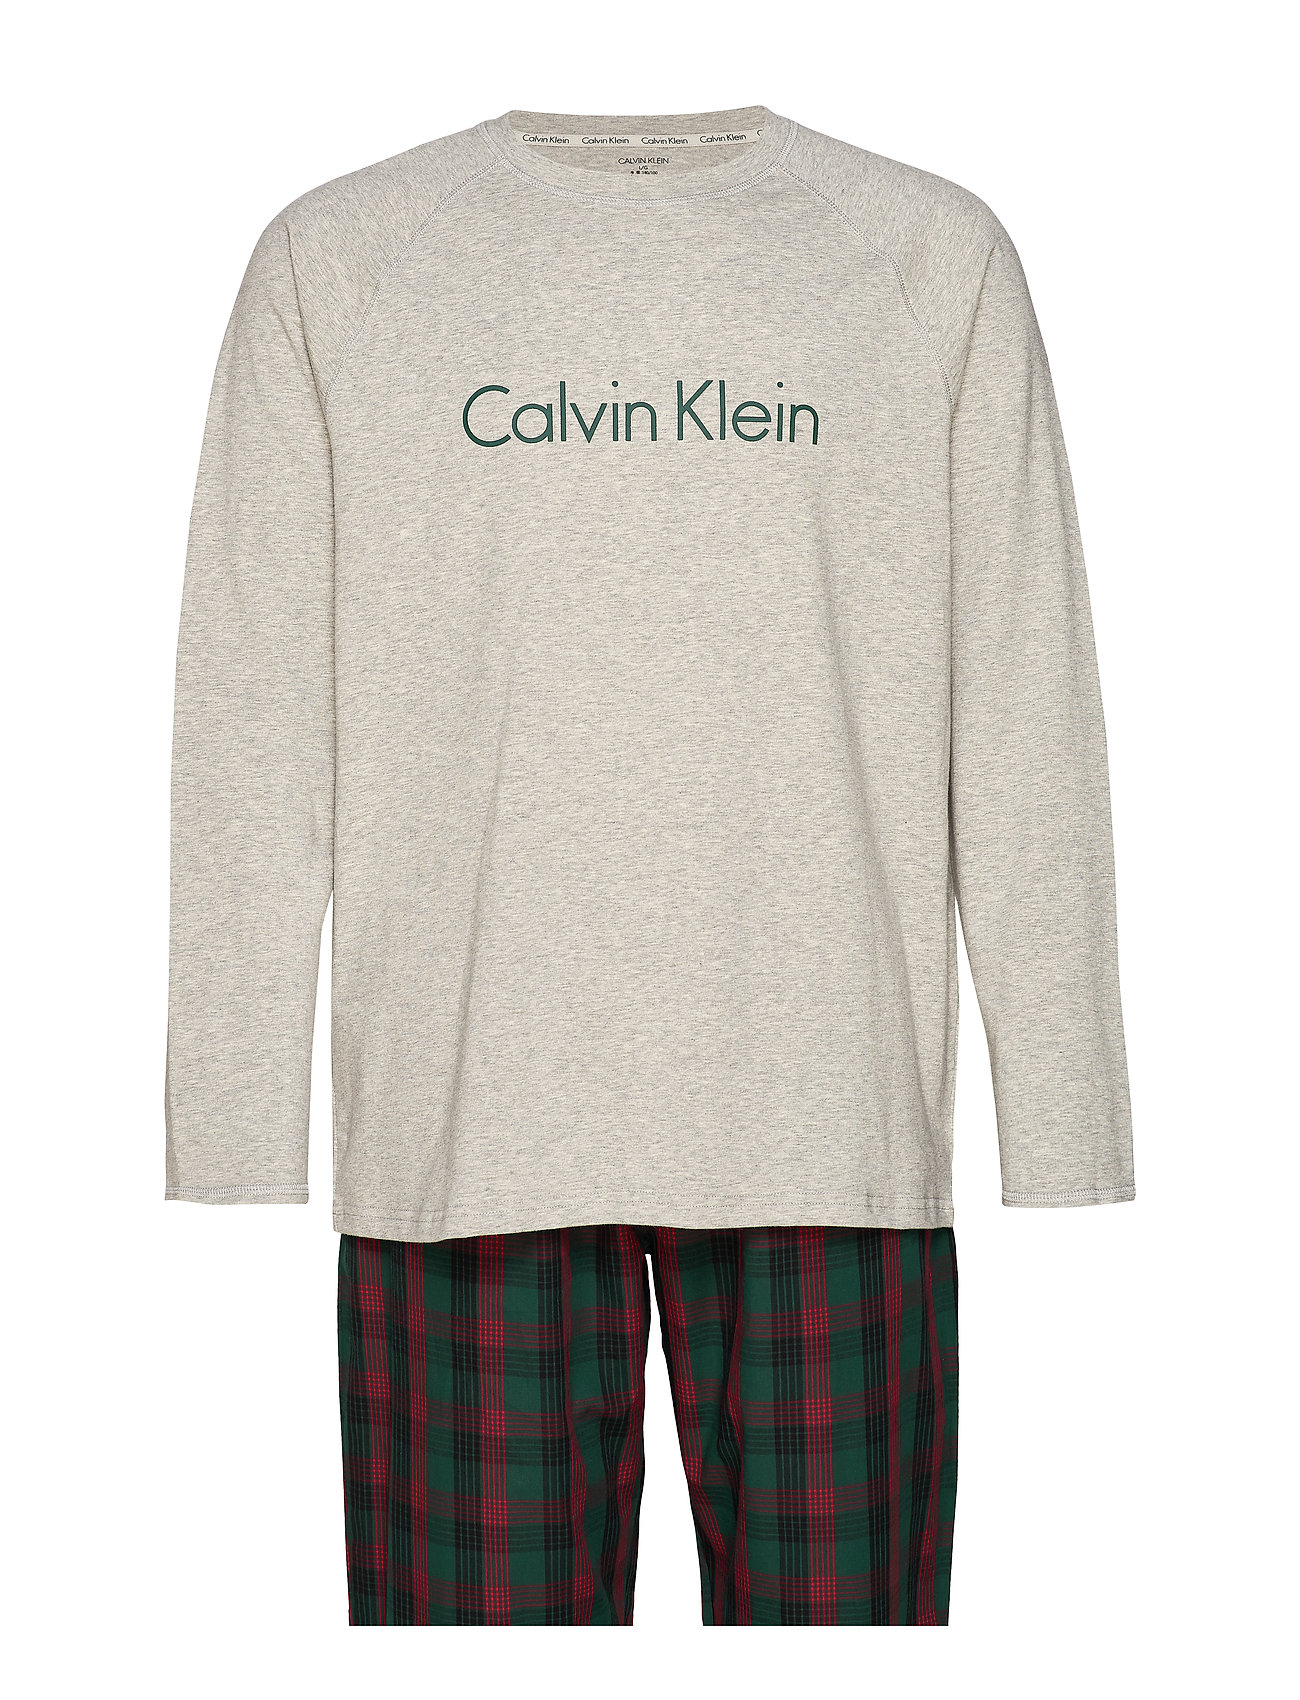 Calvin Klein WOVEN L/S PANT SET - GREY HEATHER TOP/ RANGE PLAID